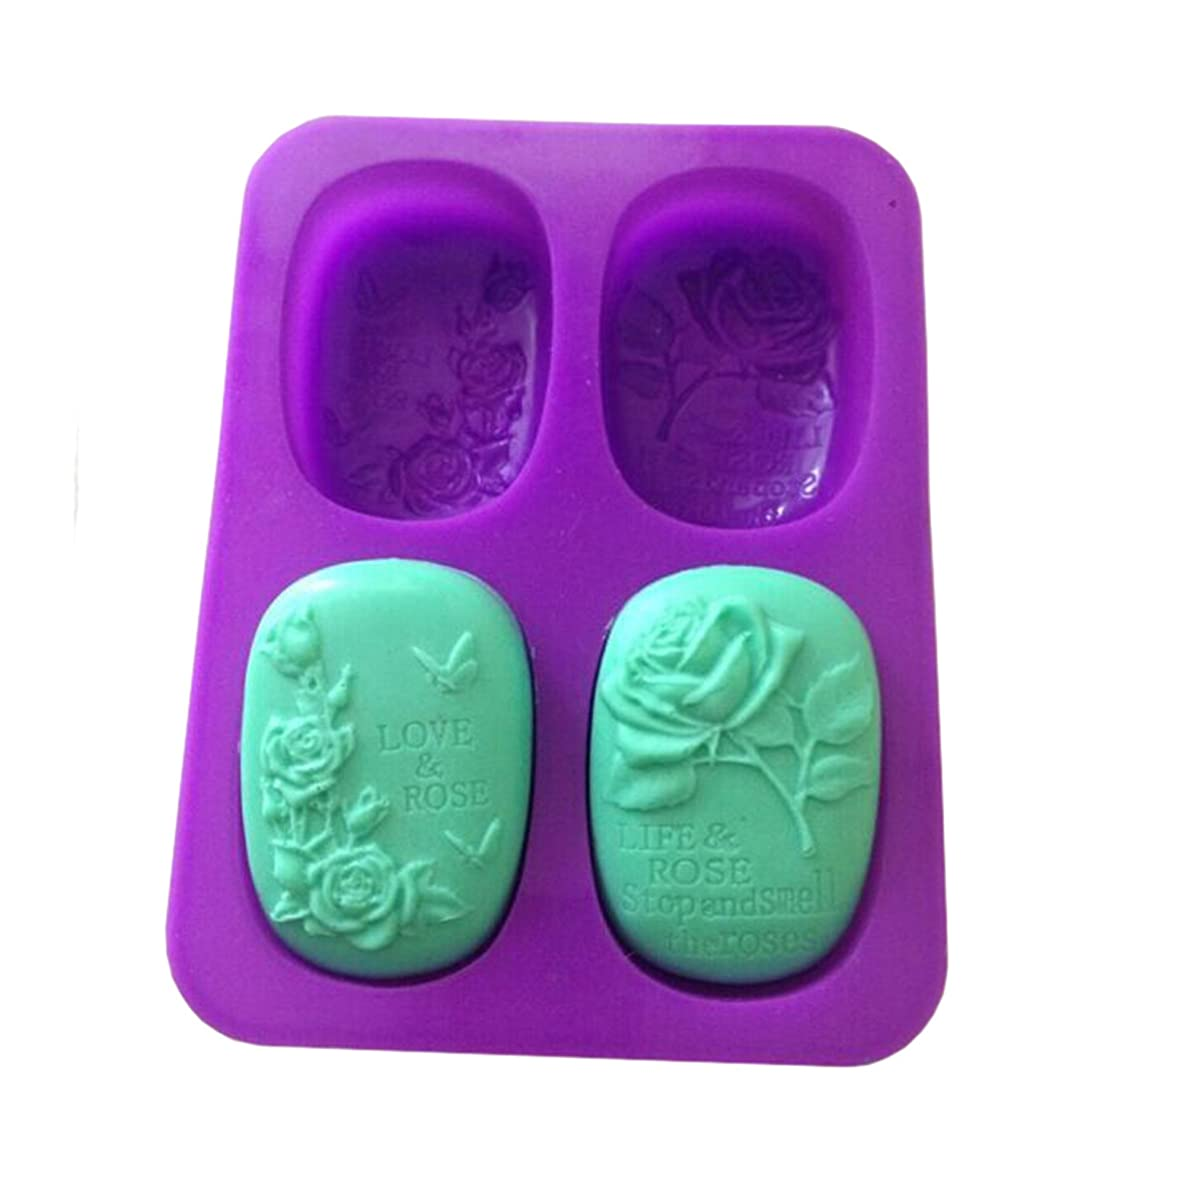 Love Life Rose Soap Mold Rectangular Lotion Bar Silicone Flower Molds Making Supplies,Set of 2